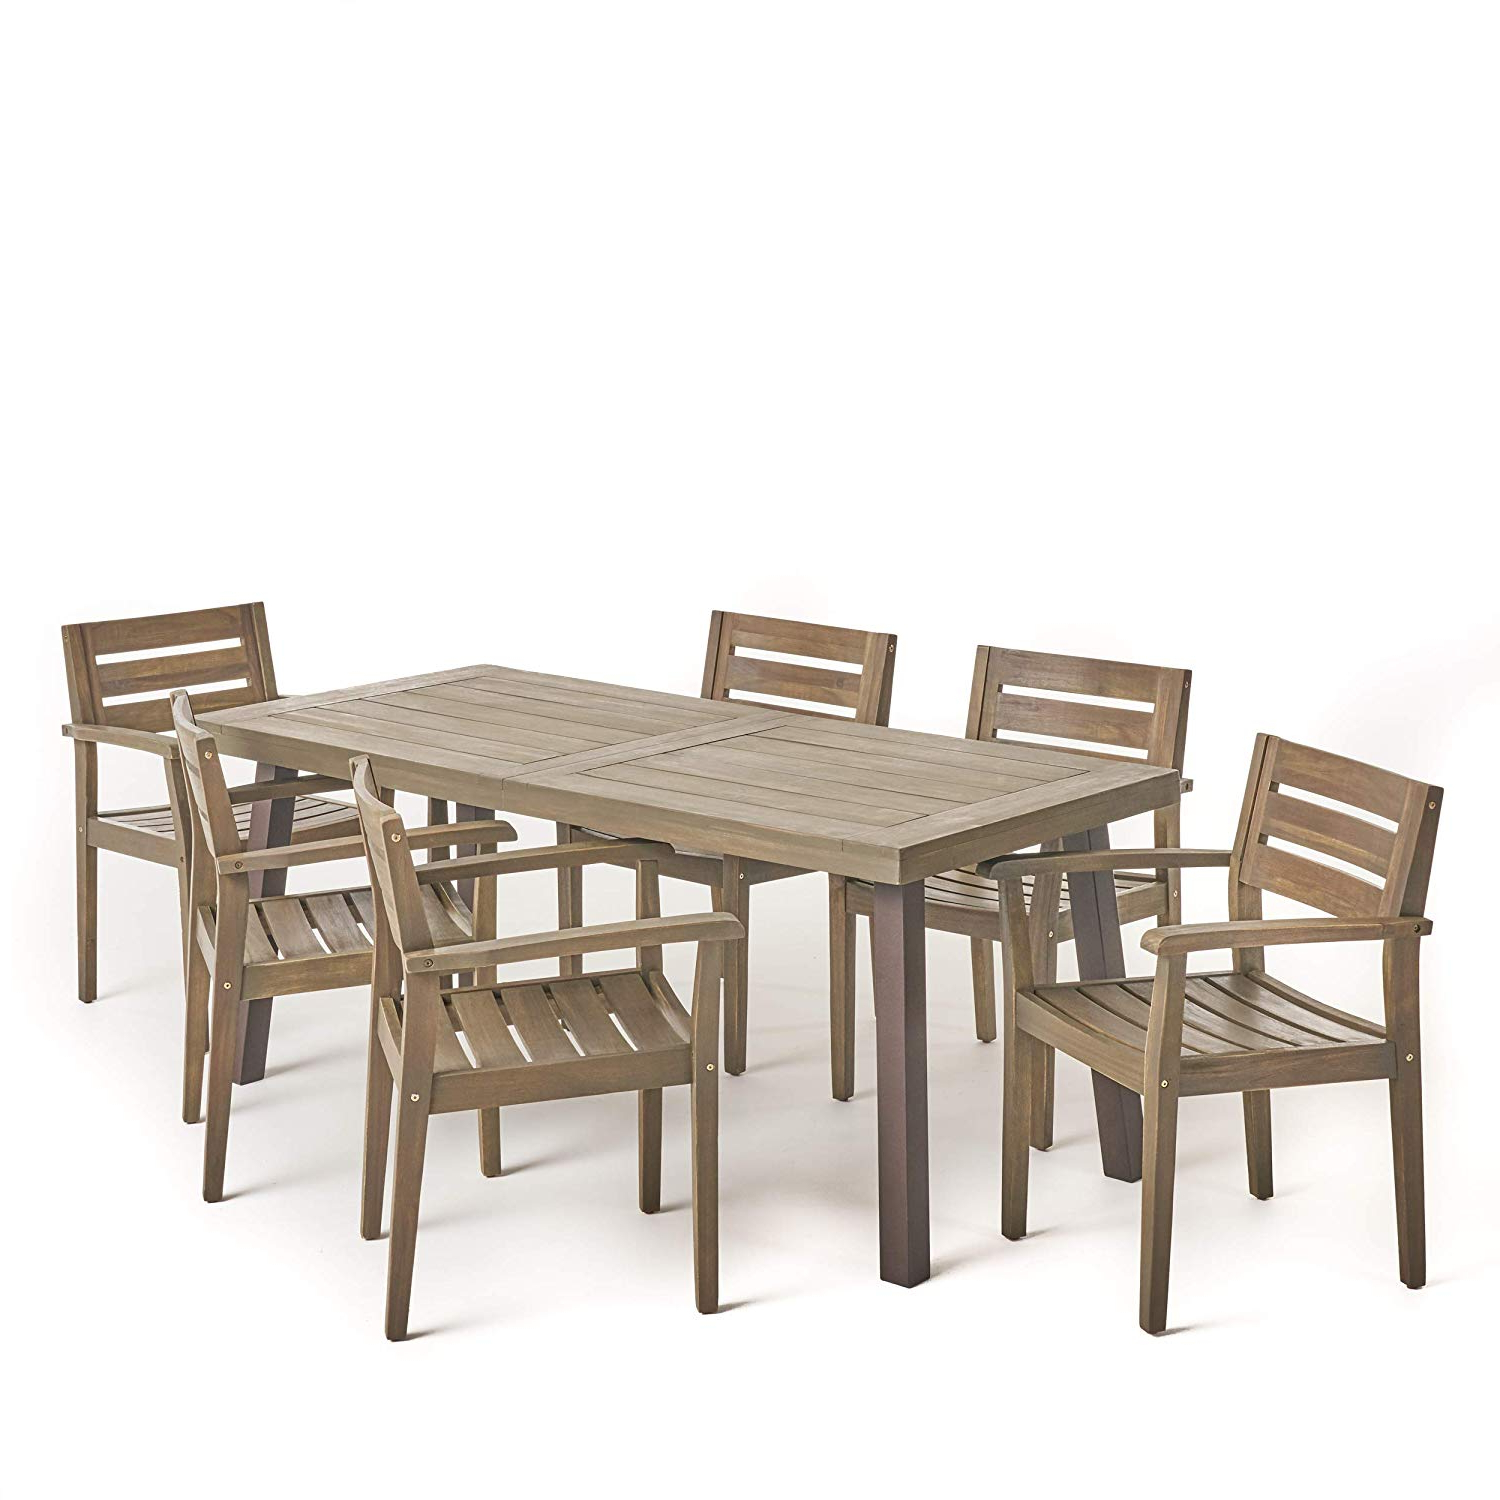 6 For Acacia Top Dining Tables With Metal Legs (View 28 of 30)